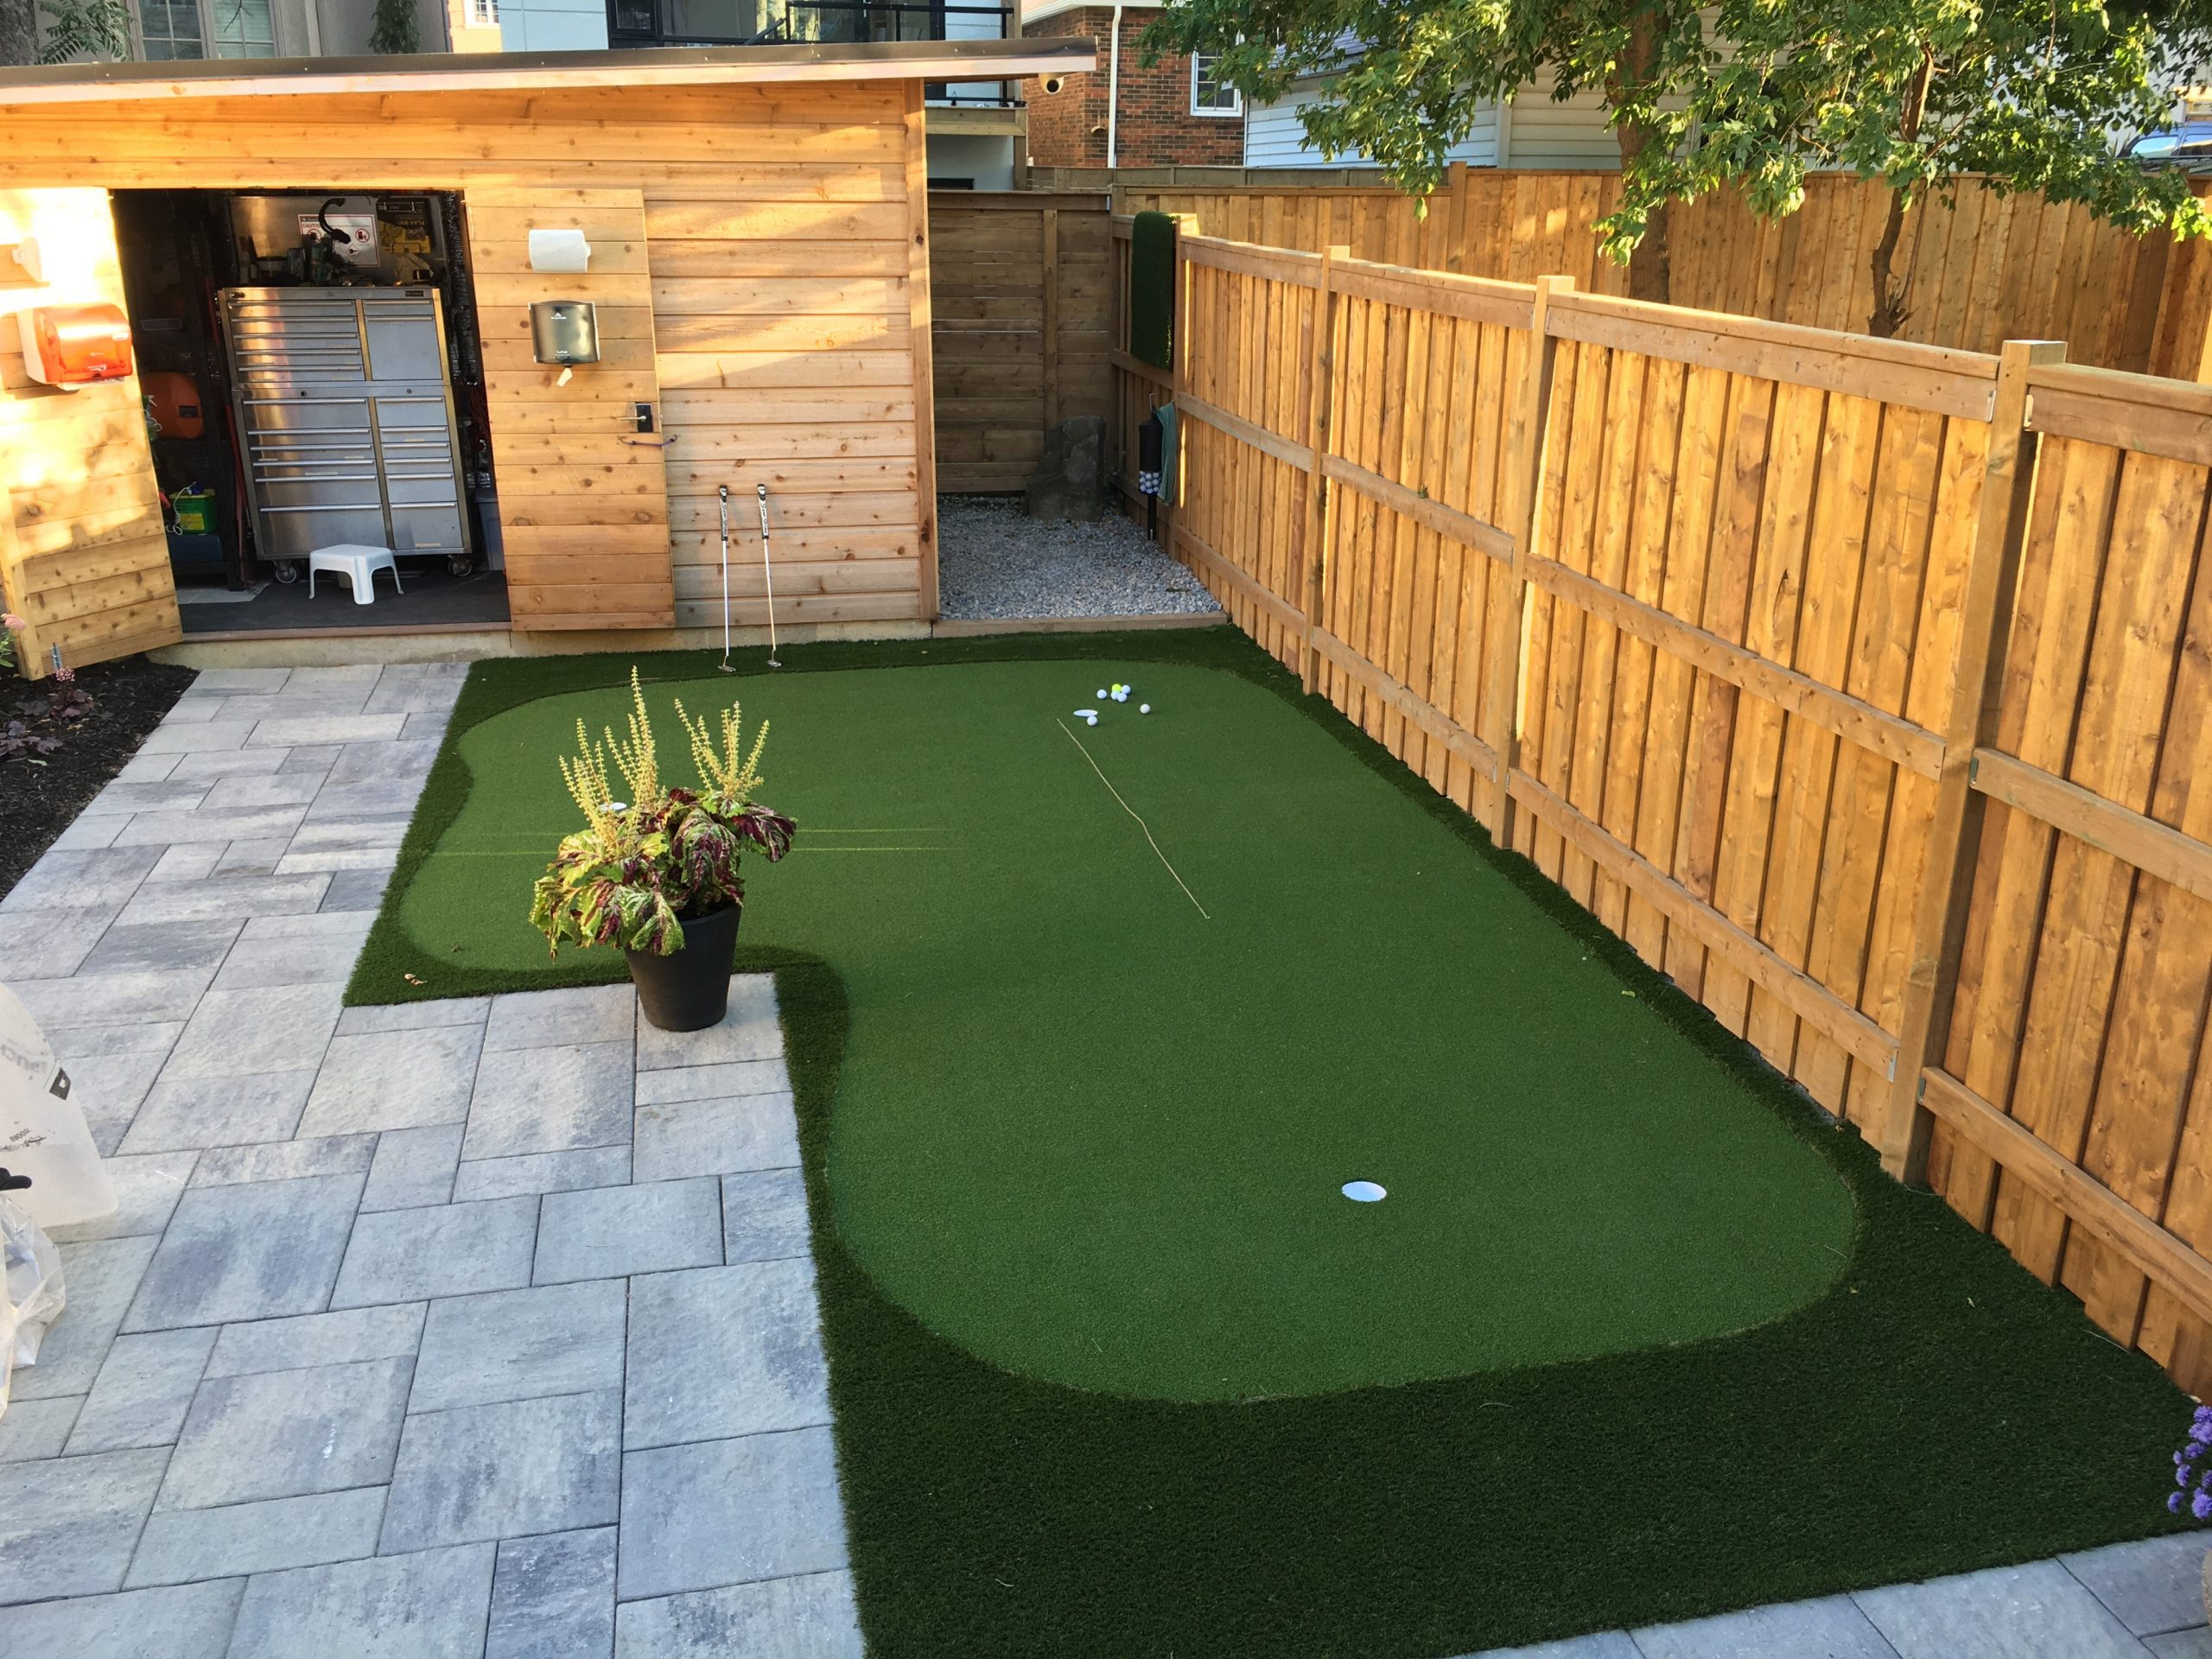 Strategically placed golf green keeps the backyard use for ...